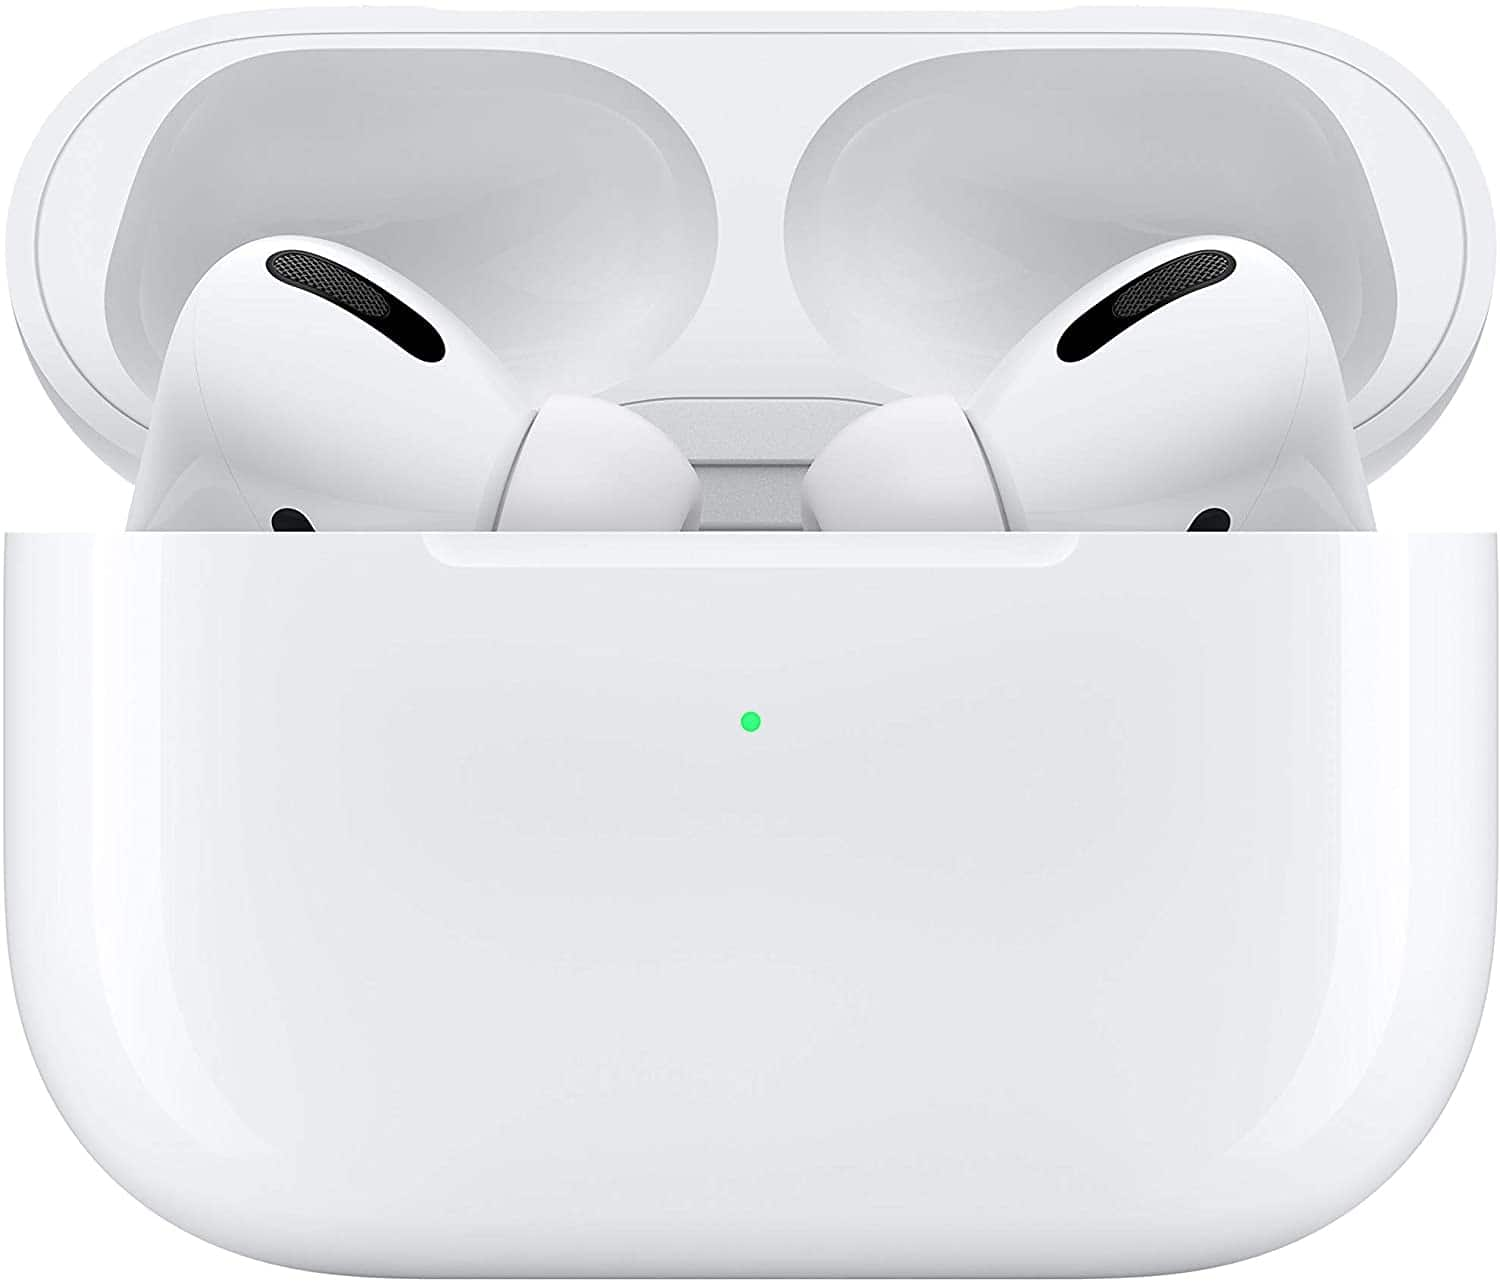 Apple AirPods Pro - $197.00